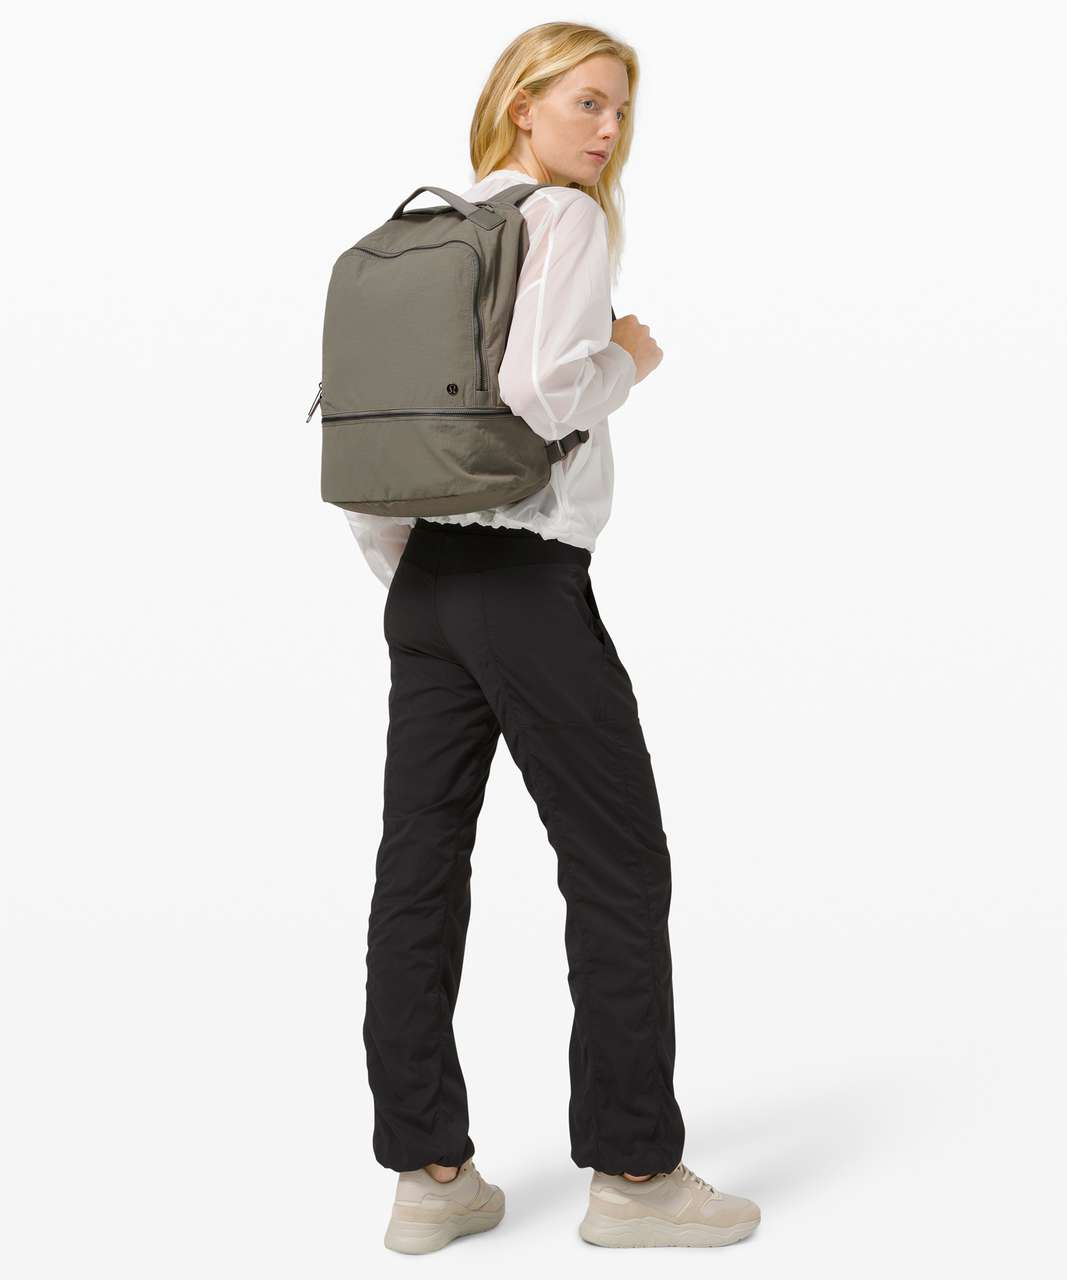 Lululemon City Adventurer Backpack *17L - Grey Sage